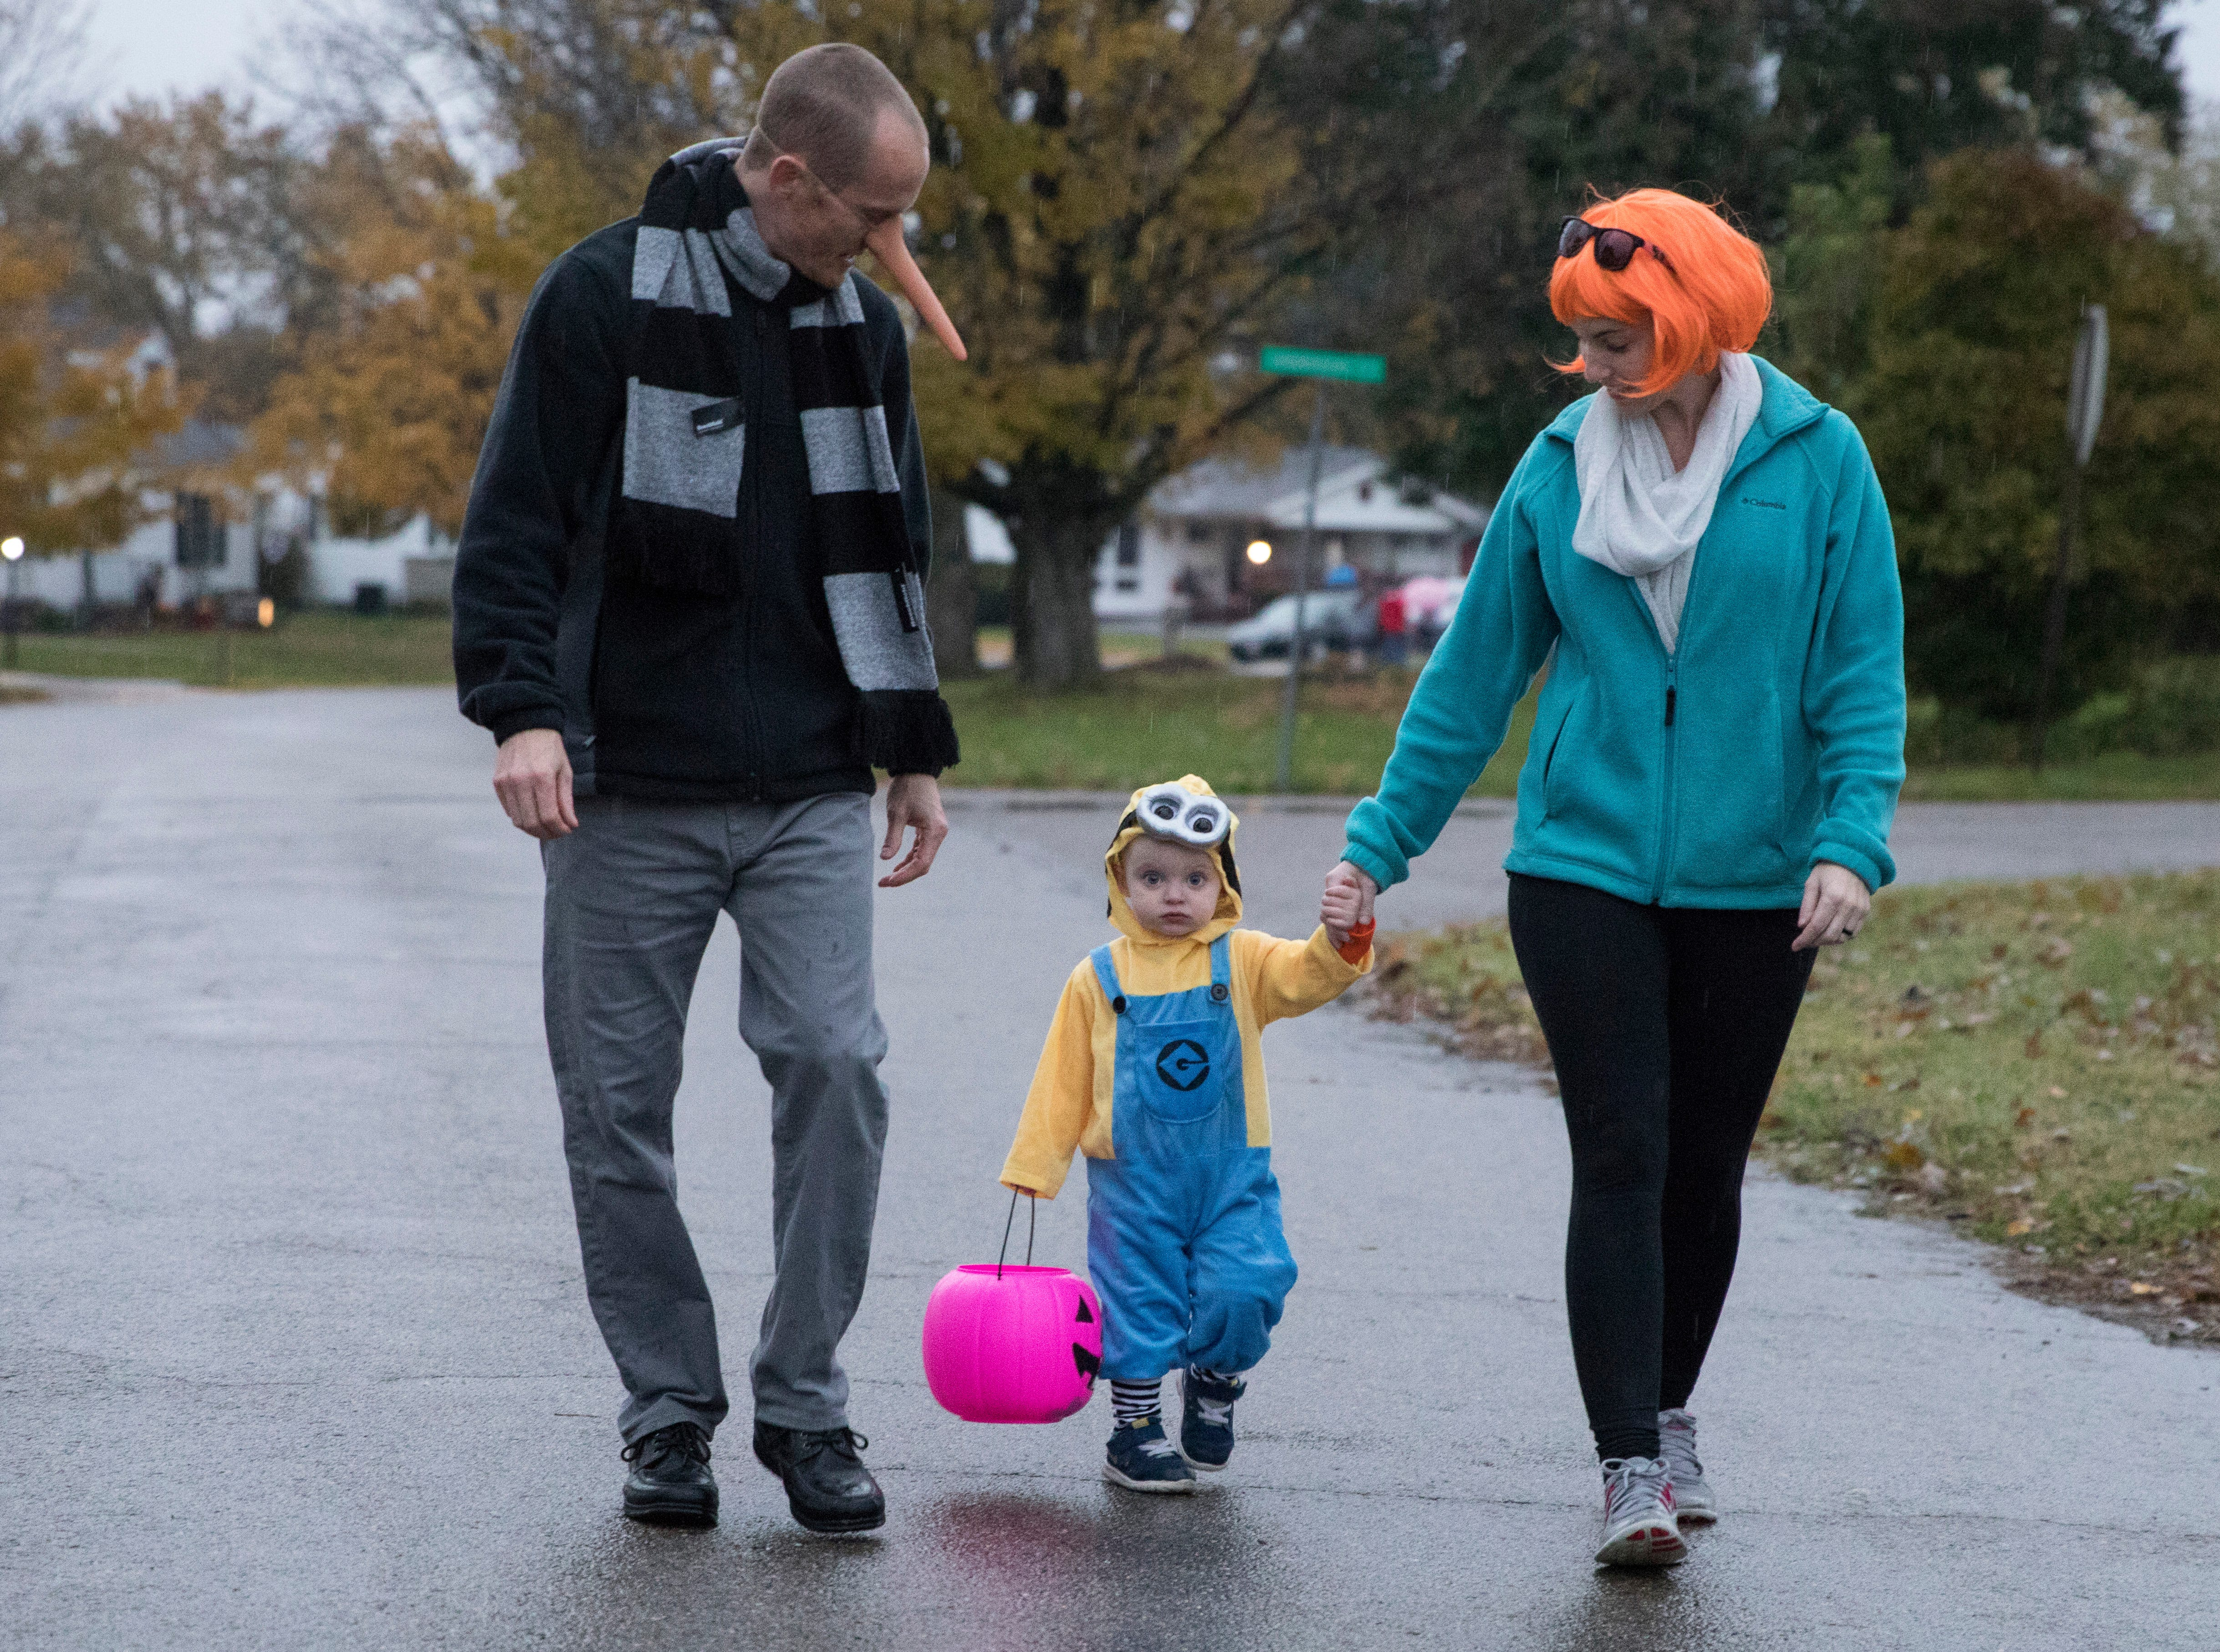 Madelyn Grahm, 2, trick-or-treats with her parents near the Save-A-Lot in Chillicothe Wednesday evening.  The rain and mud did not stop residents from collecting candy on trick-or-treat night on October 31, 2018.